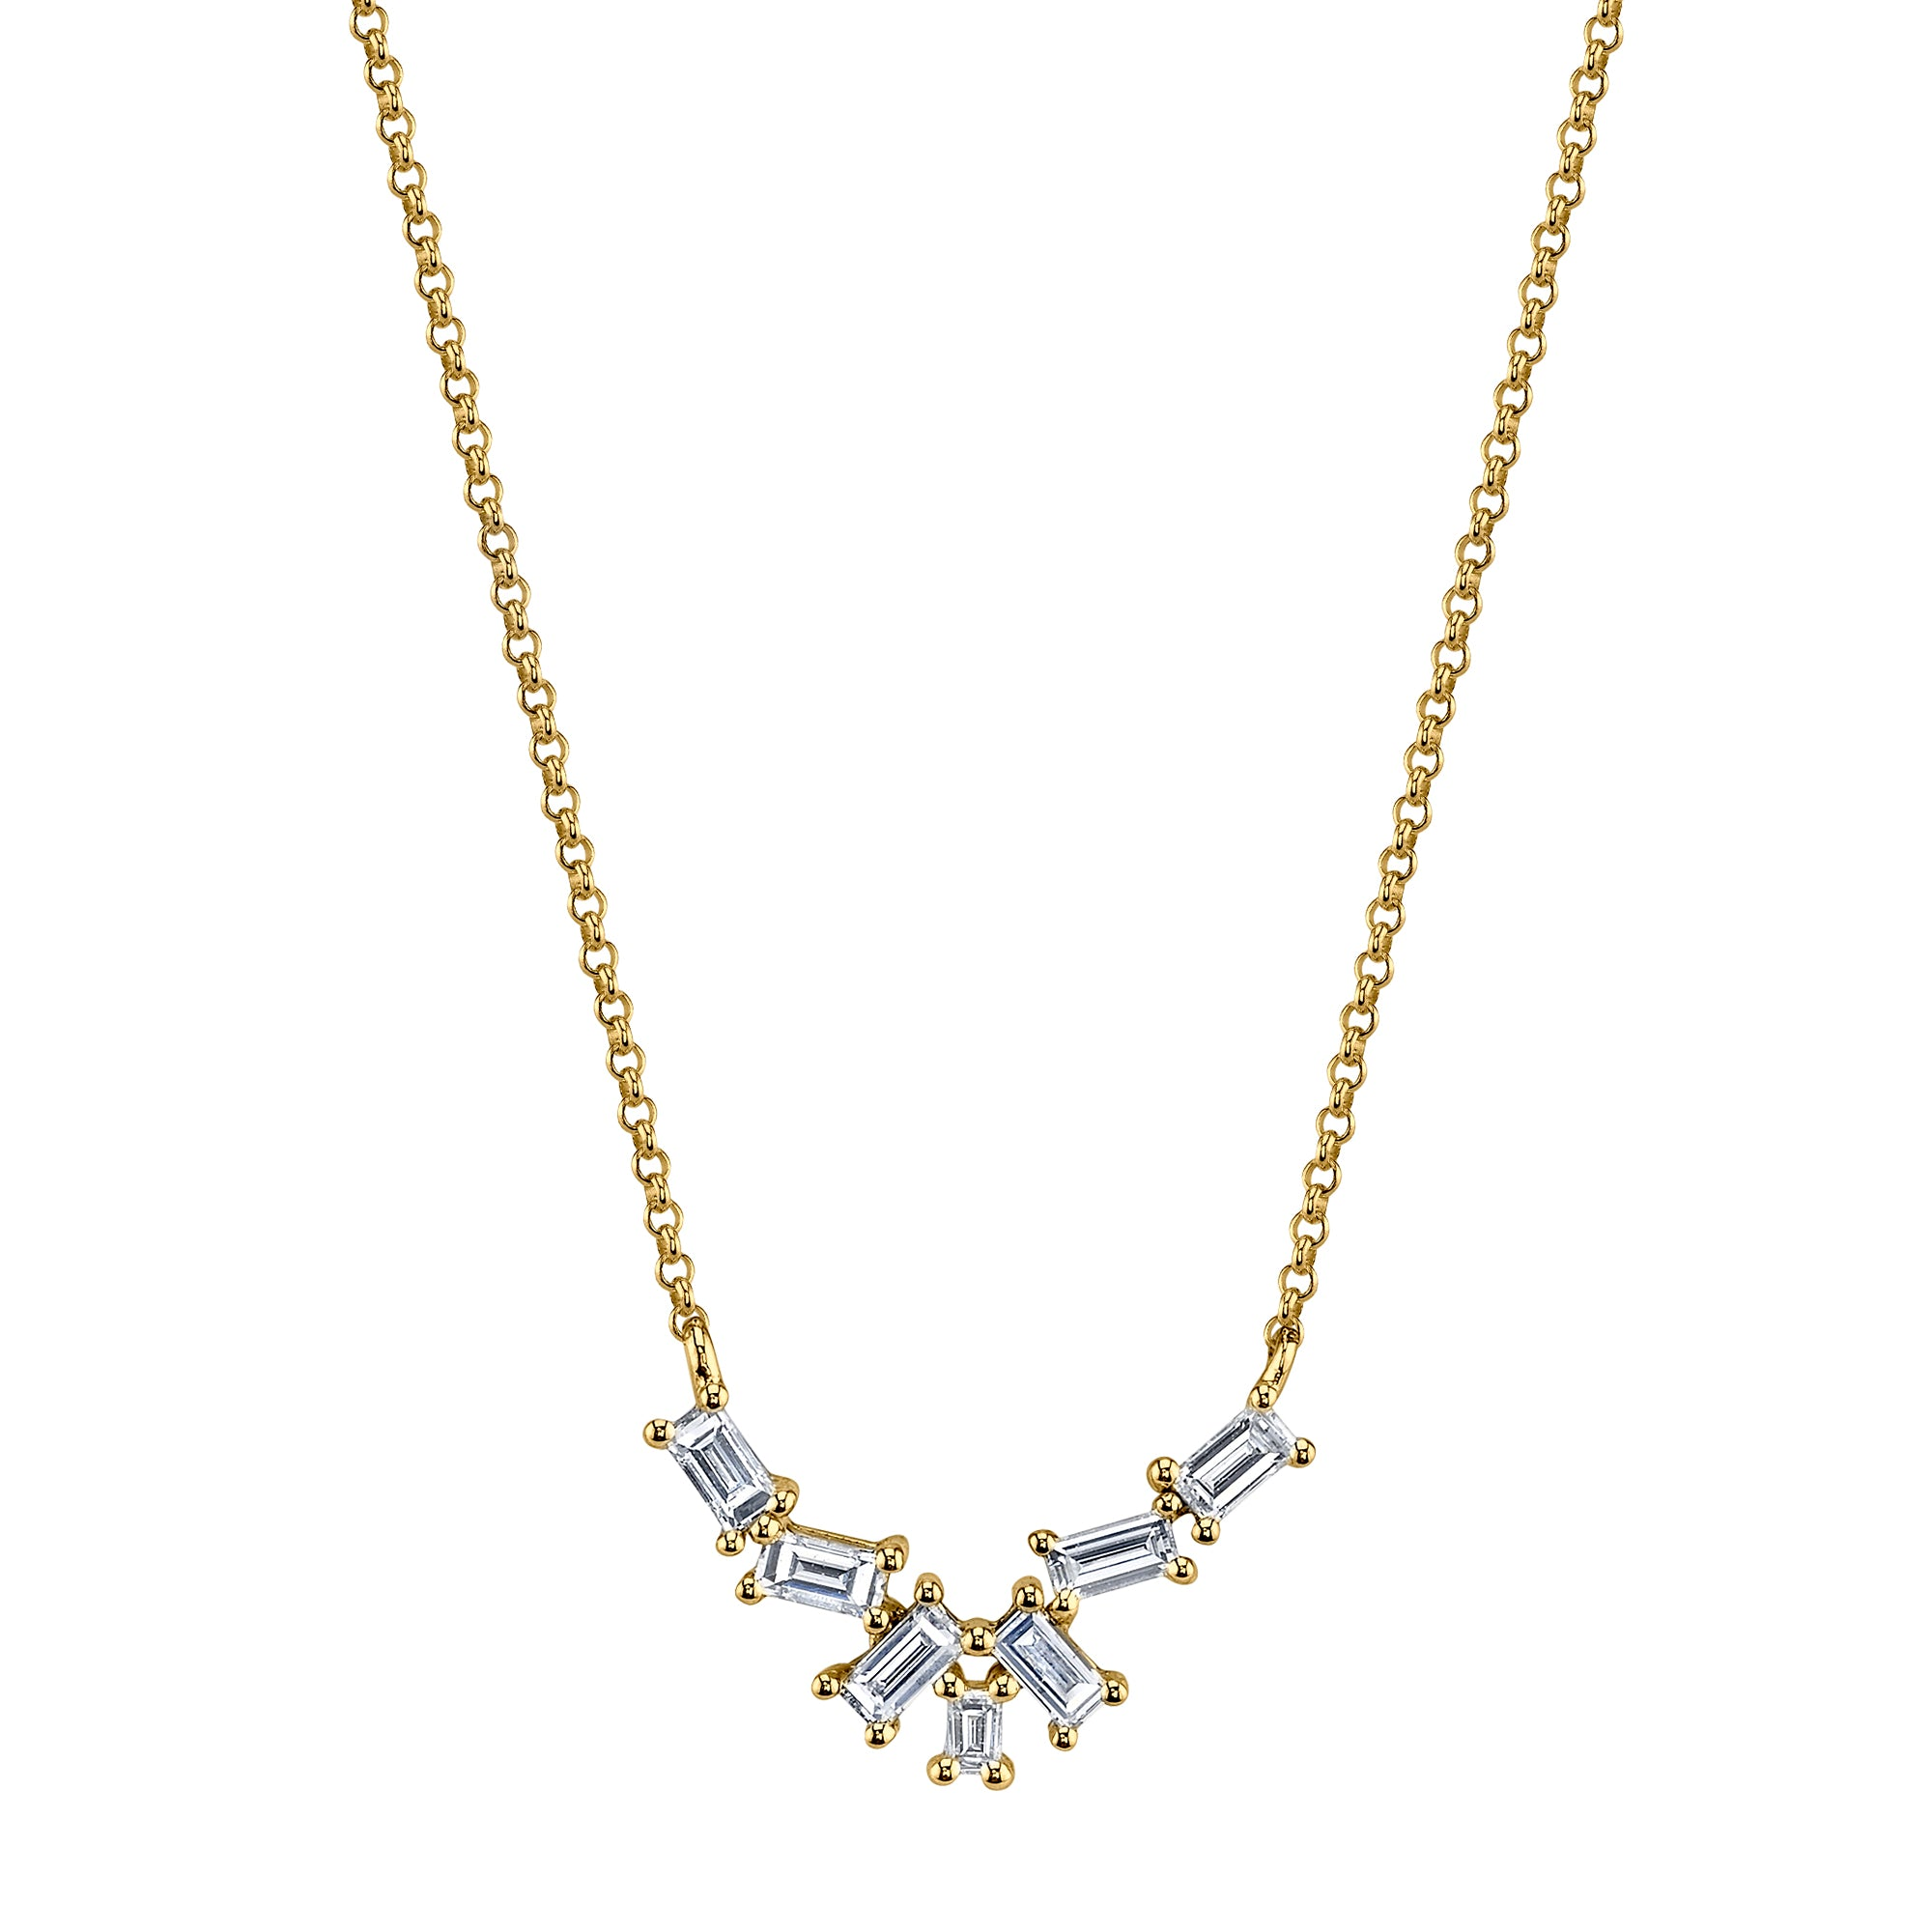 Gold & White Diamond Baguette Cluster Necklace by Borgioni for Broken English Jewelry